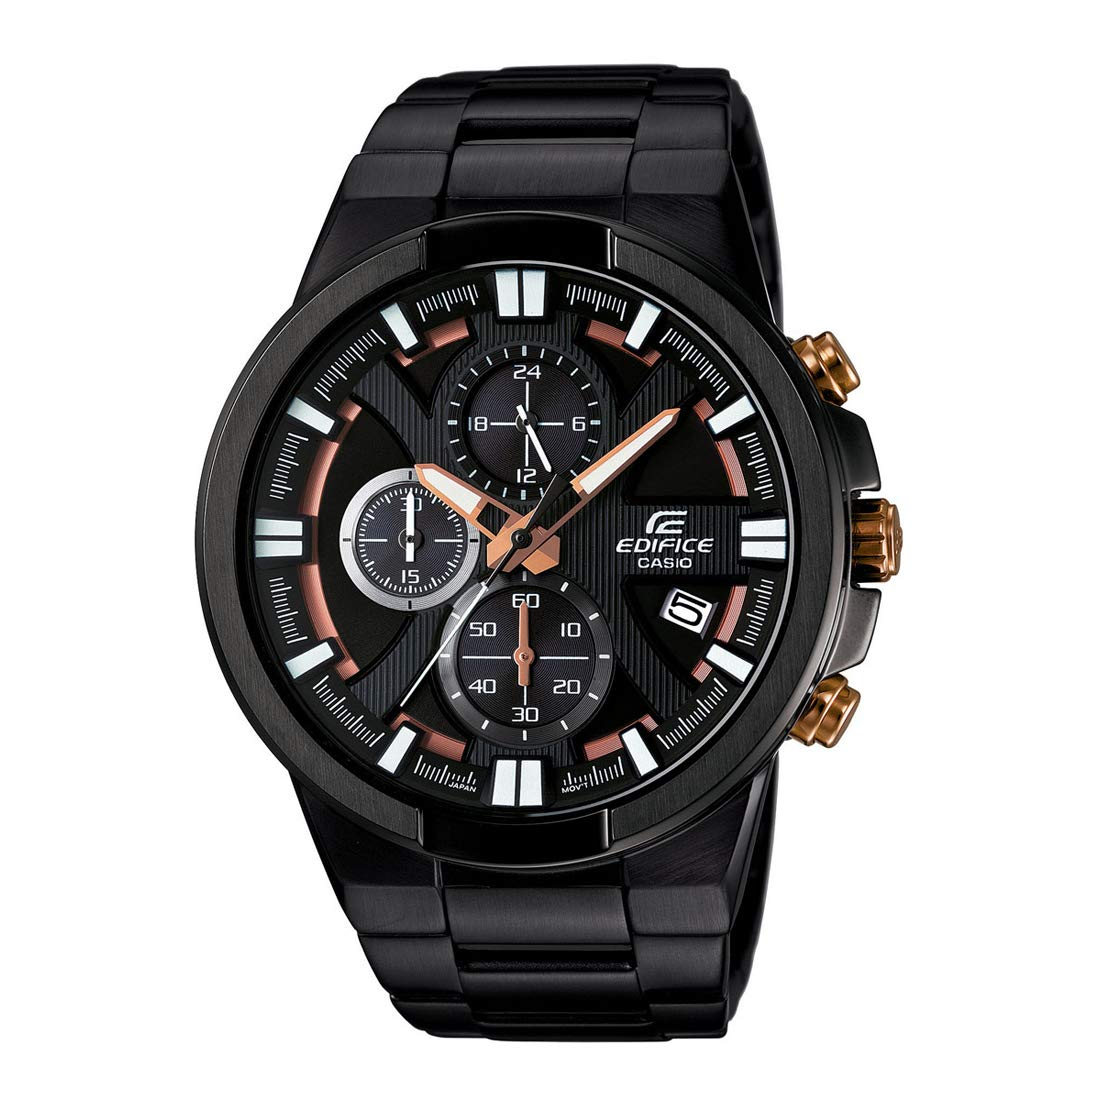 Casio Edifice Chronograph Black Dial Men's Watch - EFR-544BK-1A9VUDF (EX230)